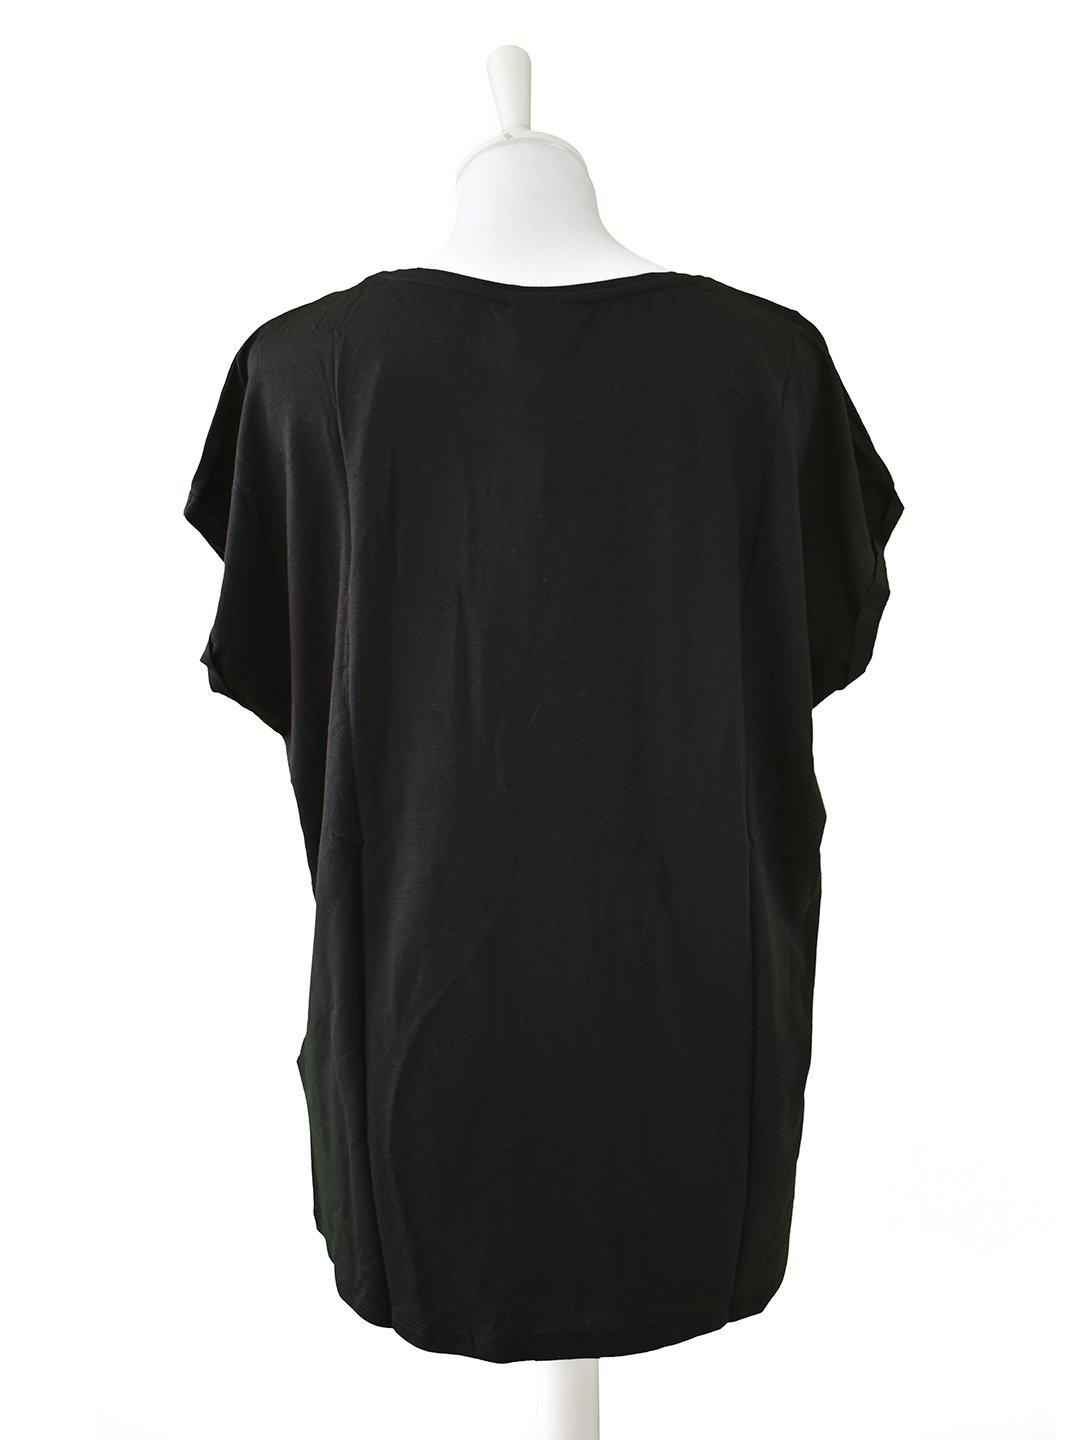 Sort Basis T-shirt fra Aware by Vero Moda